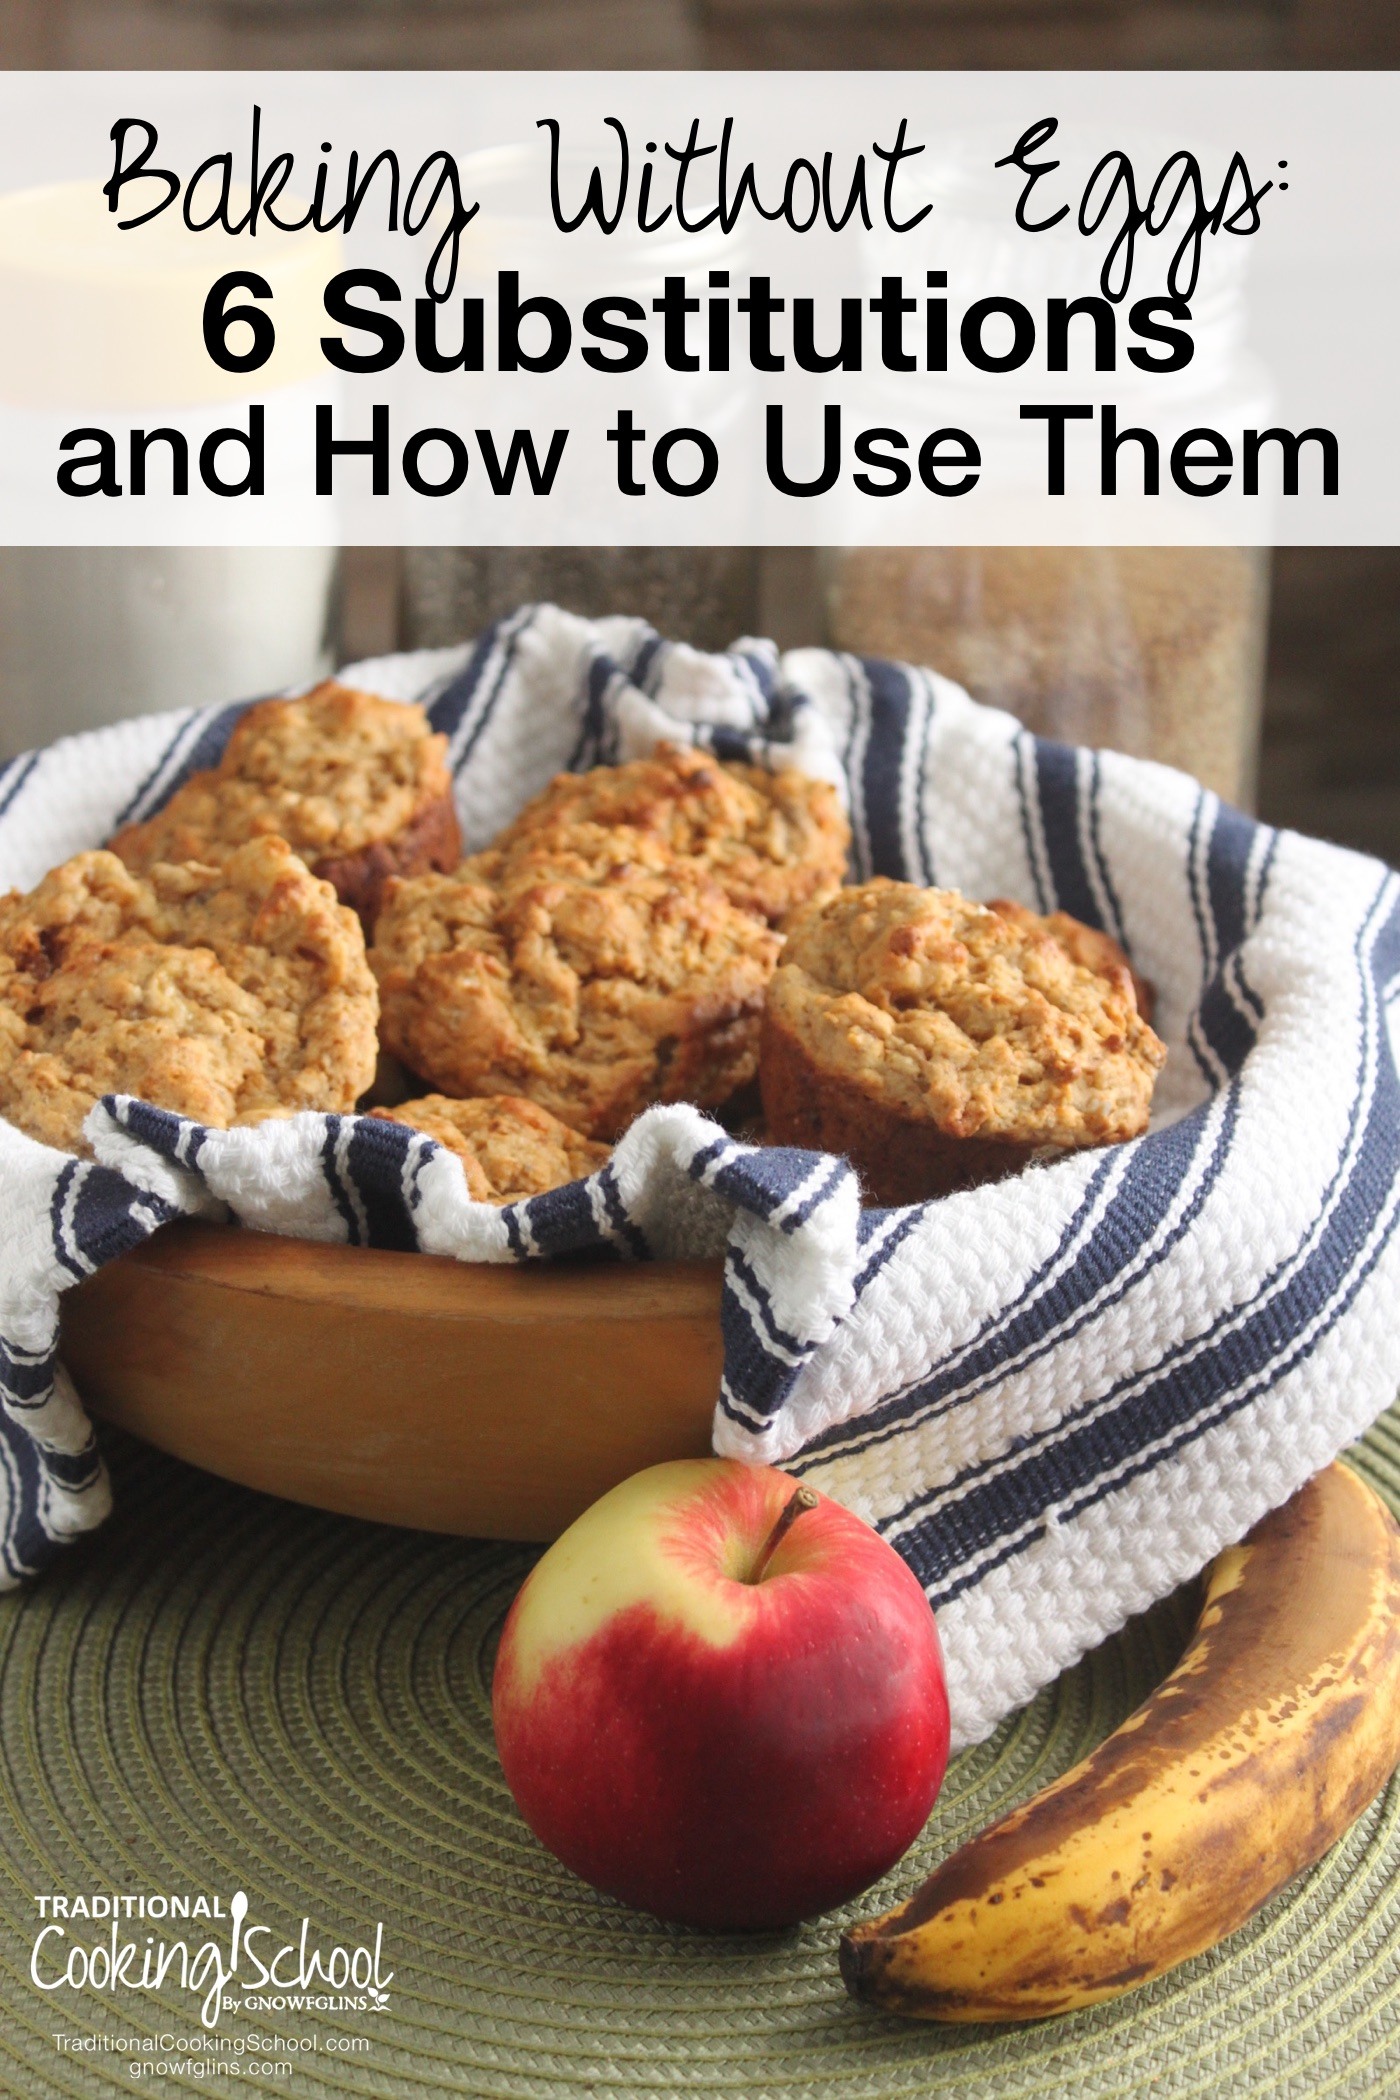 Baking Without Eggs: 6 Substitutions & How to Use Them | At a time when I spent most of my free time baking, I was told I had to give up eggs. But to bake without eggs? Was that even possible? I'm here to tell you that it's more than possible -- and easier than you might think. Although there are several egg-replacing products available, it's just as easy to create your own substitutes from ingredients you probably already have on hand. Here are 6 of my favorites, and how to use them. | TraditionalCookingSchool.com